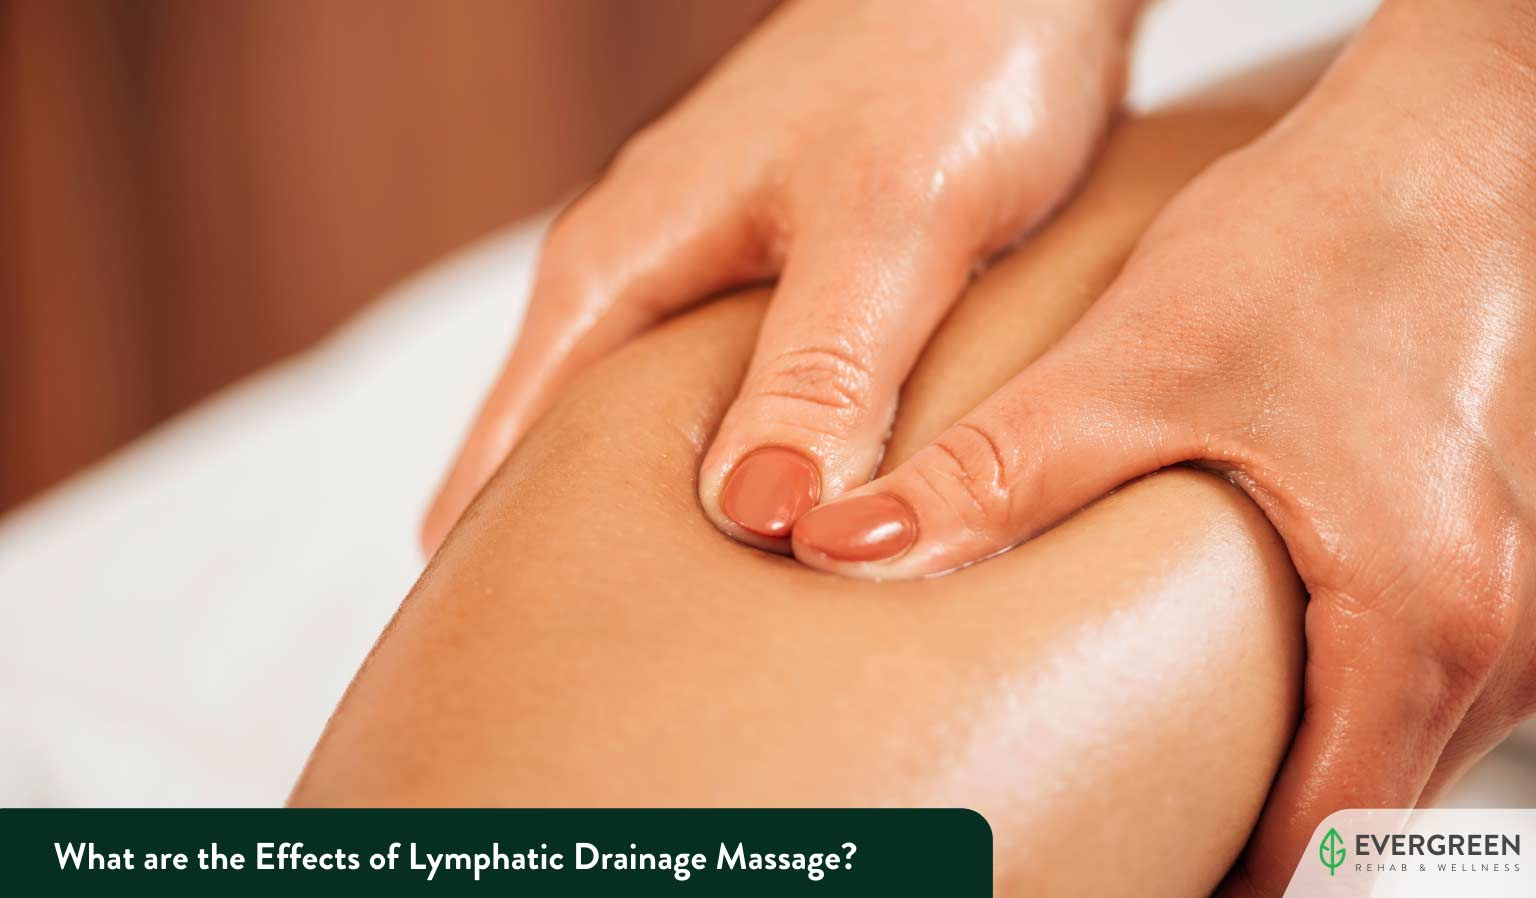 What are the Effects of Lymphatic Drainage Massage